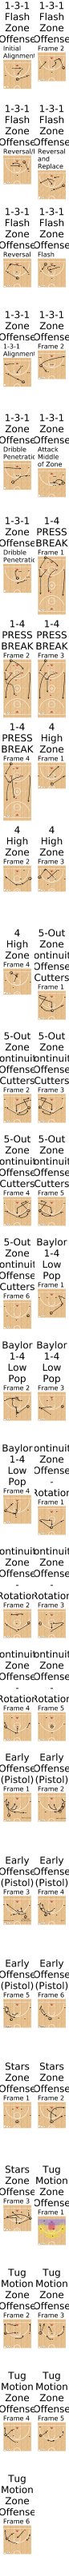 Basketball Play - FastModel Best of 2015